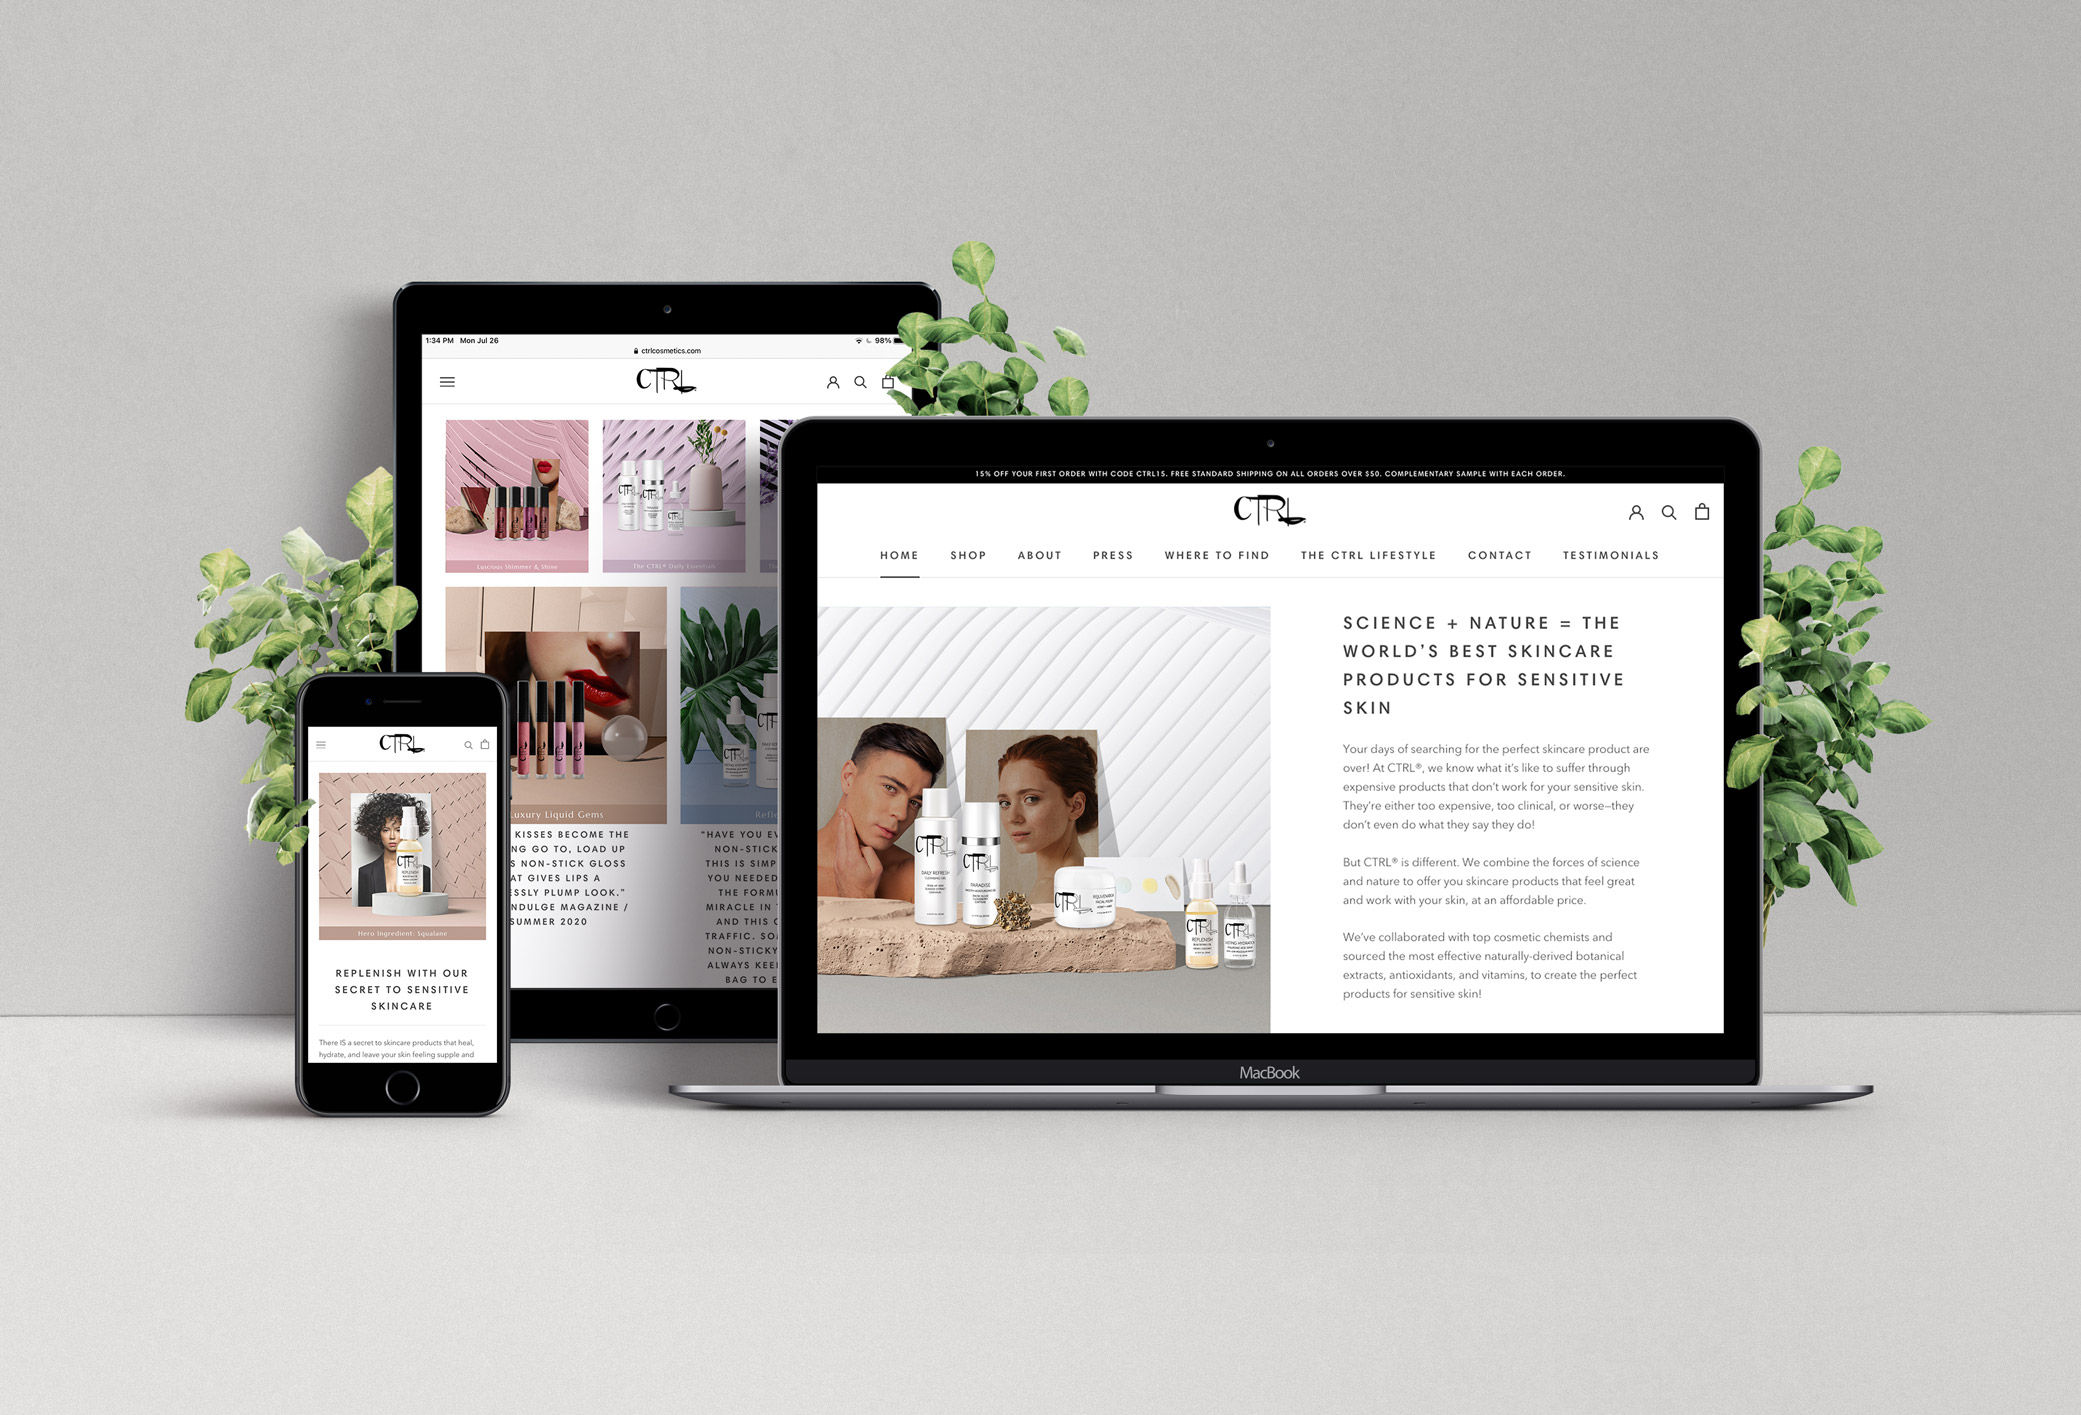 CTRL Cosmetics website featuring different views of their site homepage on an iPad, iMac and iPhone.